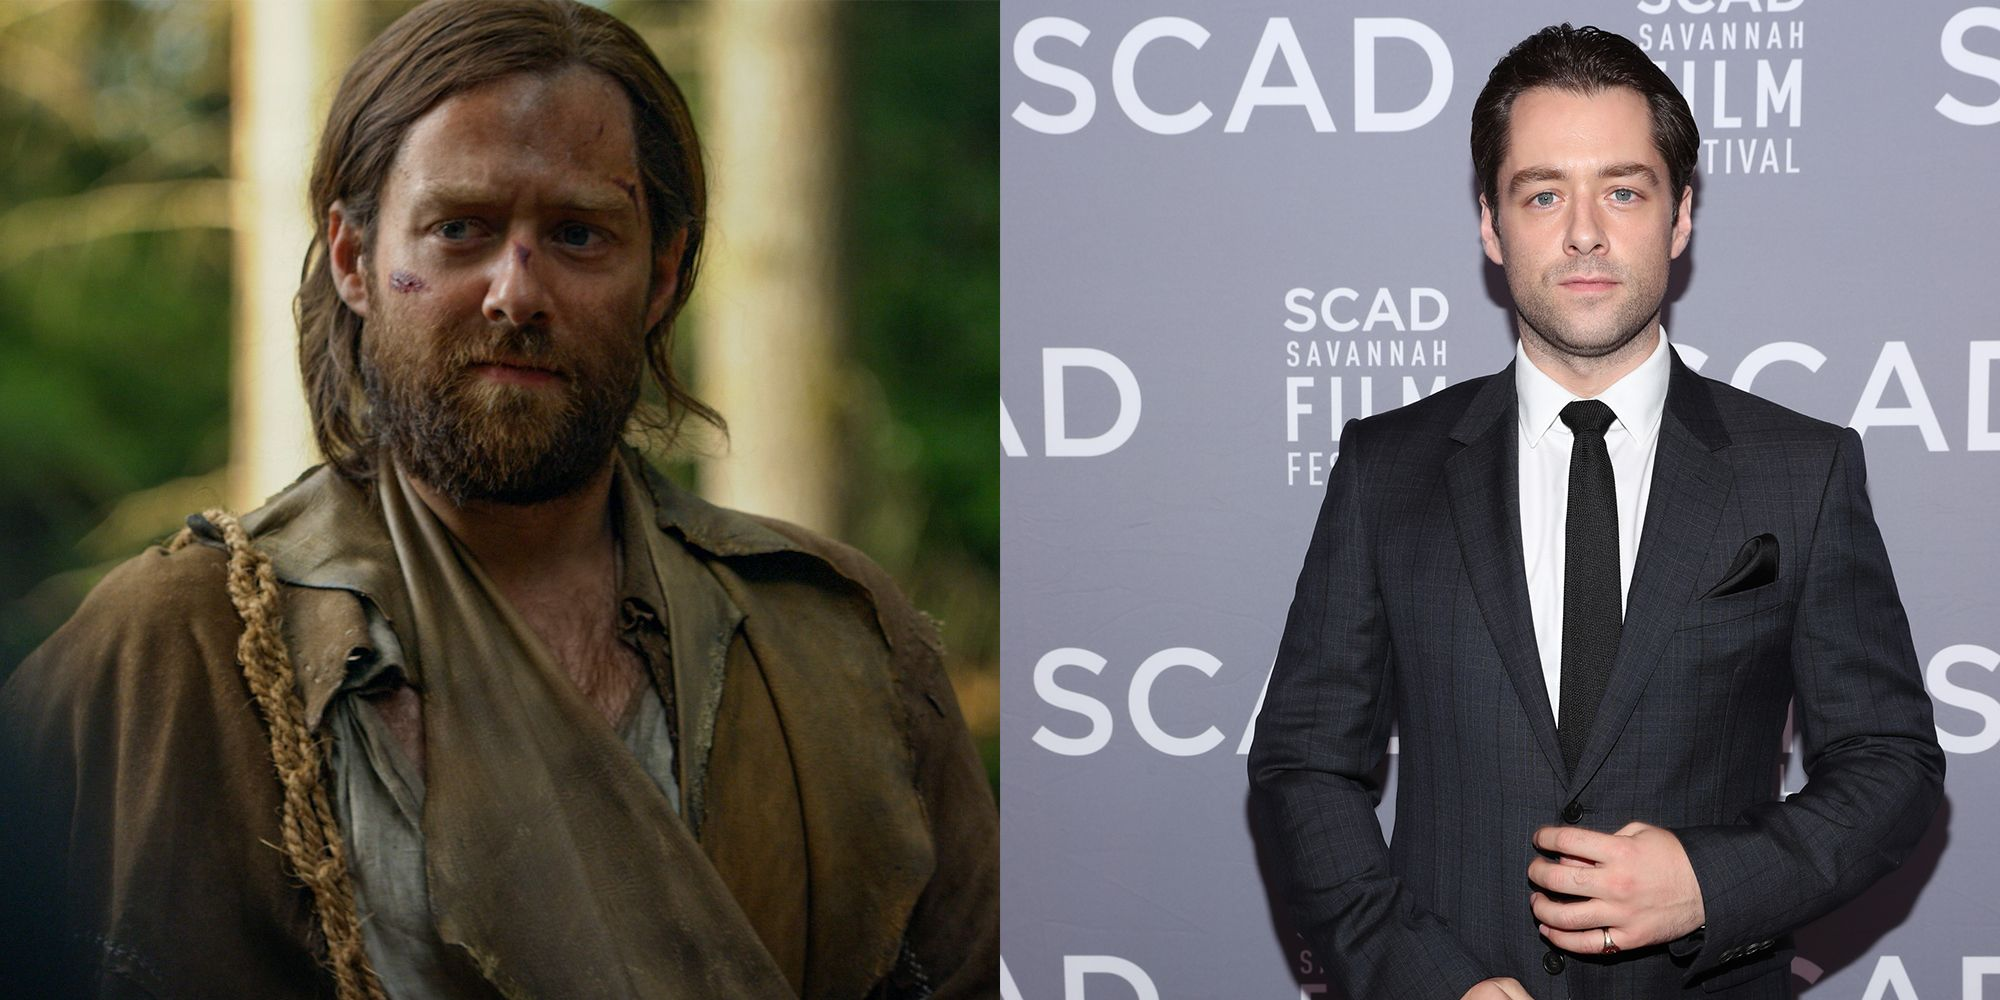 15 Photos of What the Cast of Outlander Looks Like in Real Life